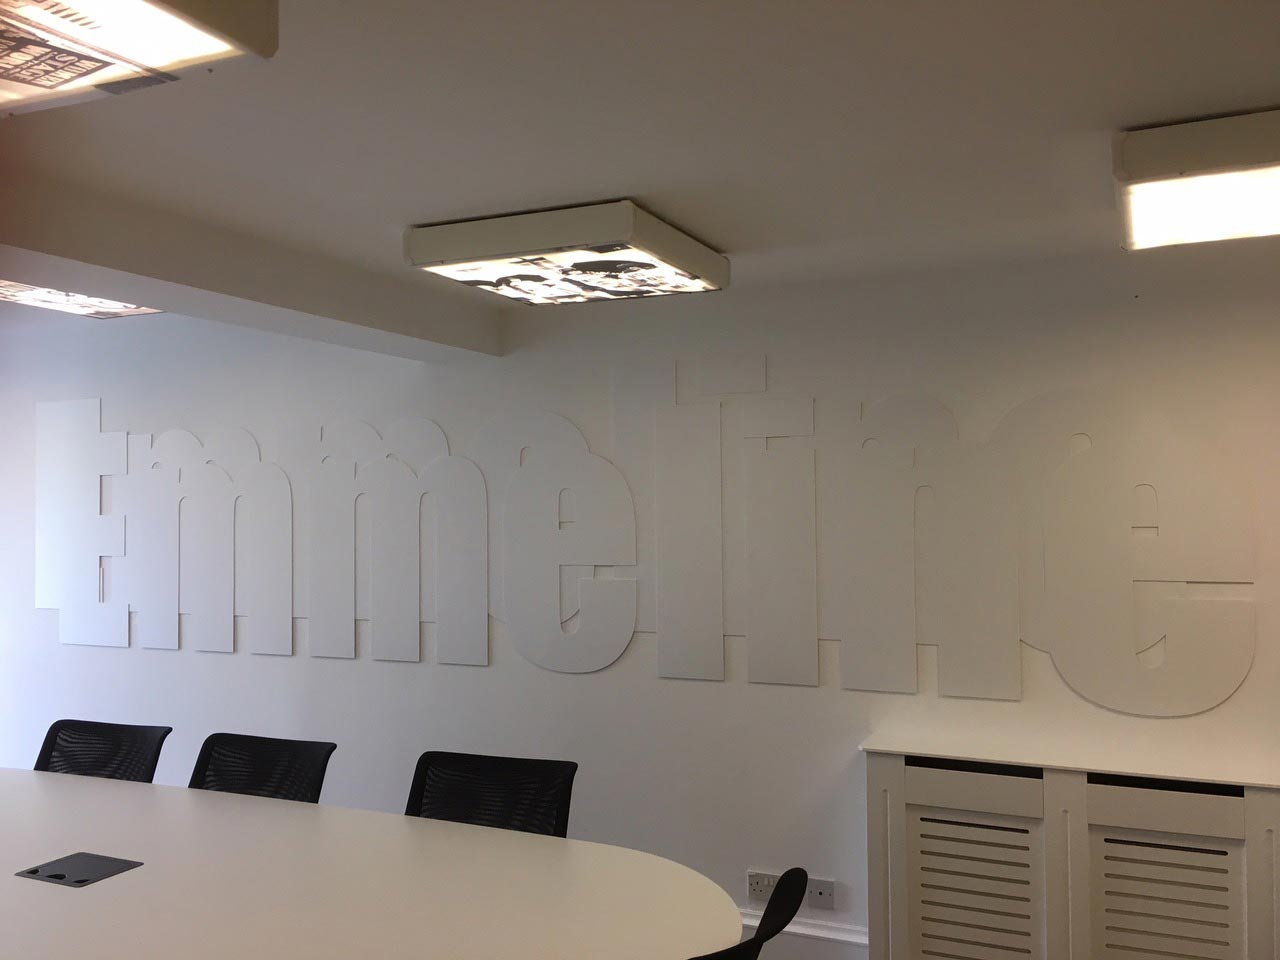 Office Interiors - meeting room with the sing emmeline on the wall